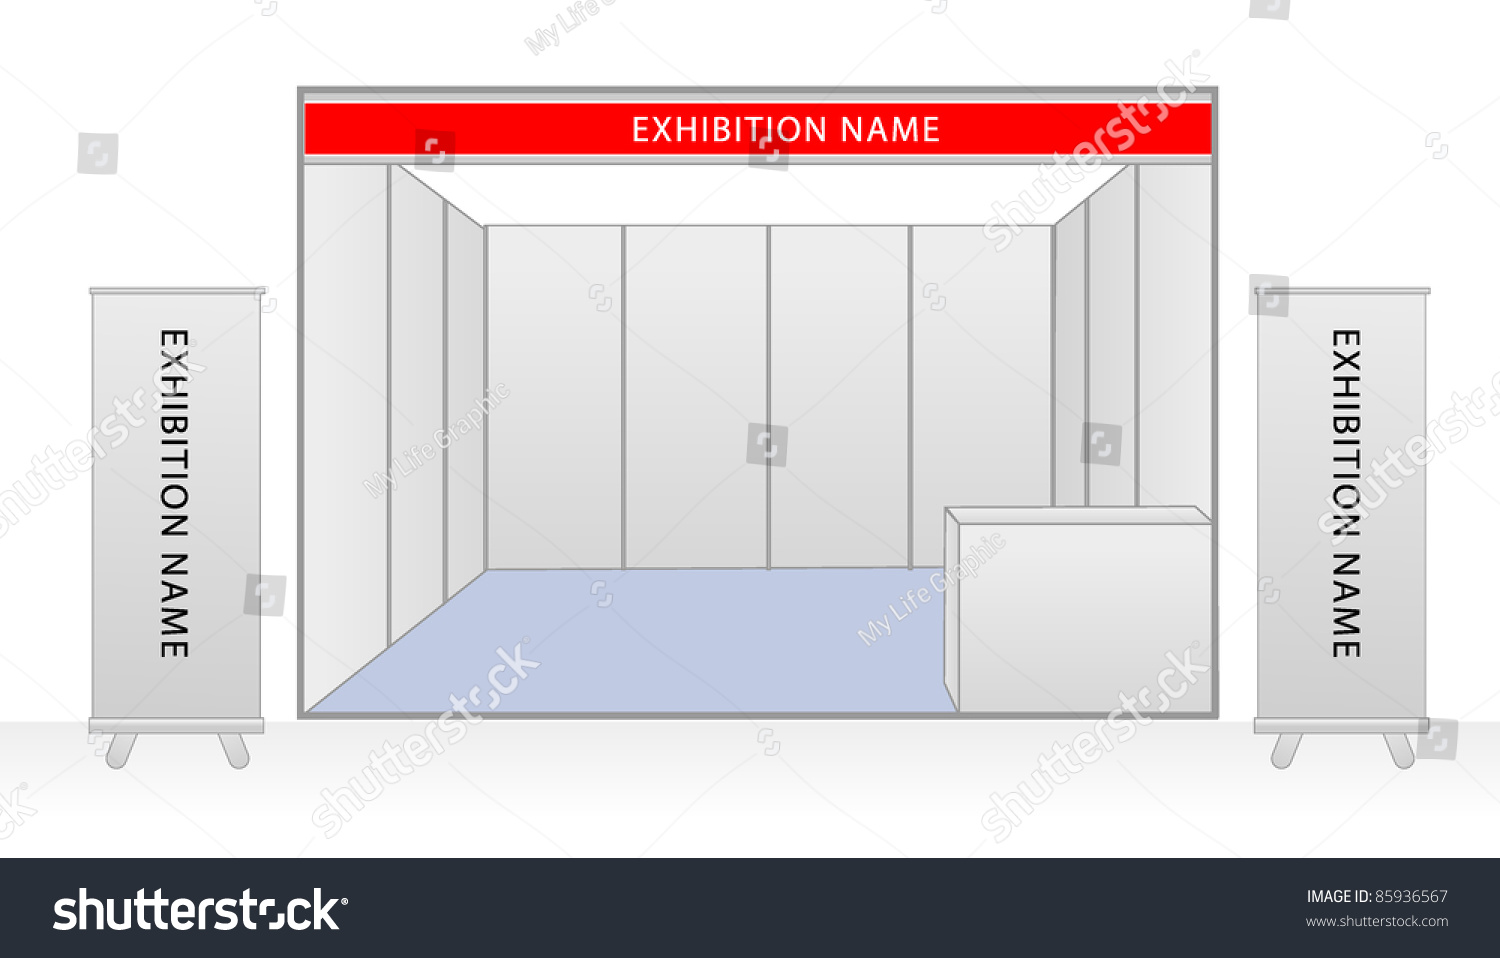 Exhibition Stand Planning Template : Blank trade exhibition stand roll banner stock vector